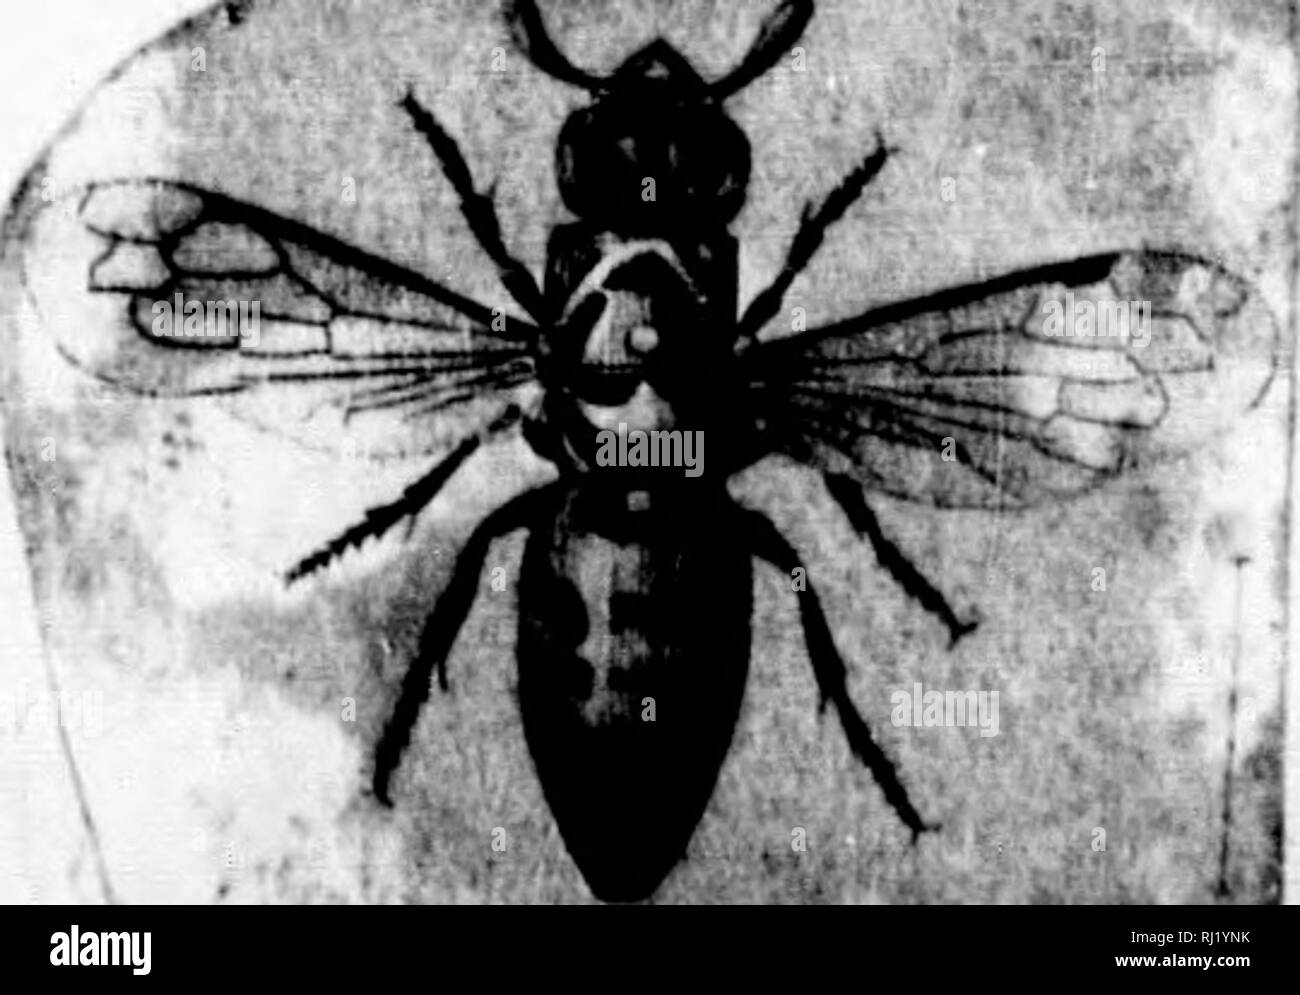 . Synopsis of American wasps [microform] : solitary wasps. Wasps; Wasps; Hymenoptera; Guèpes; Guèpes; Hyménoptères. HYMENOPTEHA OF AMERICA. [part I. Oen. TRIMERIA Sadss.' Ay^tennie clubbed, lenglhened ; the last articles very indistinct. Lip not extensile, tongue shaped, billd. Labial palpi composed of three articles; maxillary apparently of none. Mandibles tolerably sharp. Abdominal segments constricted at their base ; not retractile. 1. T. americaiia Sauss. Eriniiys americatid Sadss. Ann. Soc. Ent. Fr. 3(1 ser. I, Bull, xx, 1853.â Trimeria americana Sacss. Vespides, III, 1854, 81, PI. iv - Stock Image